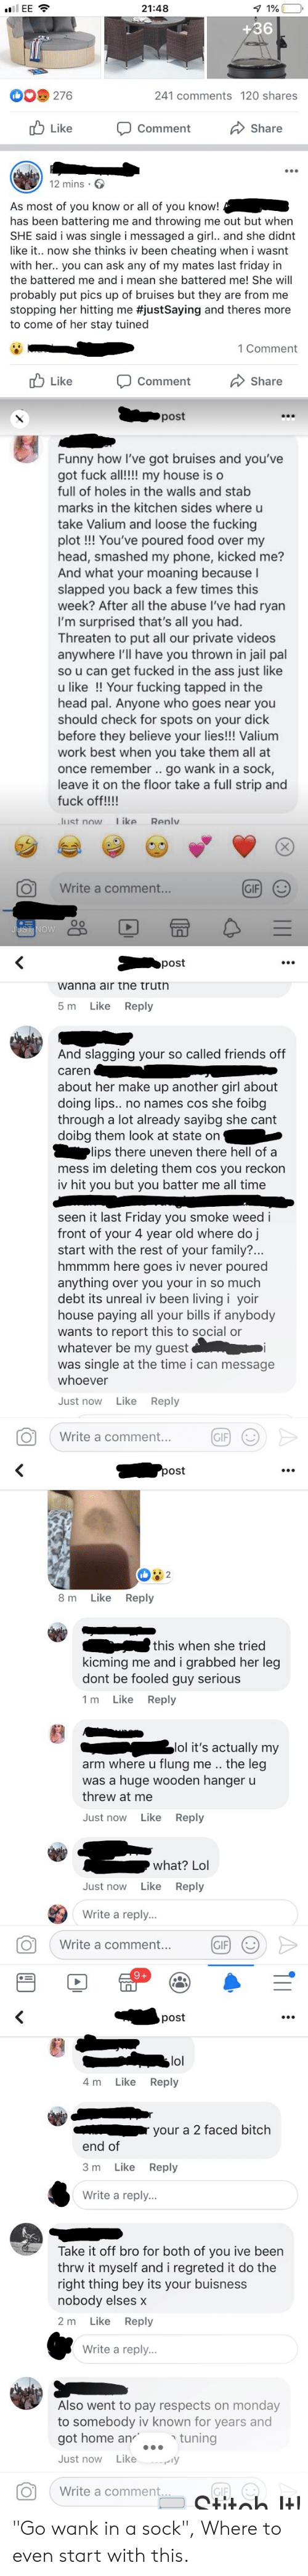 Ass, Bitch, and Cheating: 21:48  1%  il EE  +36  DO 276  241 comments 120 shares  Like  Share  Comment  12 mins  As most of you know or all of you know!  has been battering me and throwing me out but when  SHE said i was single i messaged a girl.. and she didnt  like it... now she thinks iv been cheating when i wasnt  with her.. you can ask any of my mates last friday in  the battered me and i mean she battered me! She will  probably put pics up of bruises but they are from me  stopping her hitting me #justSaying and theres more  to come of her stay tuined  1 Comment  Like  Comment  Share  post  Funny how I've got bruises and you've  got fuck all!!!! my house is o  full of holes in the walls and stab  marks in the kitchen sides where u  take Valium and loose the fucking  plot!!! You've poured food over my  head, smashed my phone, kicked me?  And what your moaning because l  slapped you back a few times this  week? After all the abuse I've had ryan  I'm surprised that's all you had.  Threaten to put all our private videos  anywhere I'll have you thrown in jail pal  so u can get fucked in the ass just like  u like !! Your fucking tapped in the  head pal. Anyone who goes near you  should check for spots on your dick  before they believe your lies!! Valium  work best when you take them all at  once remember . go wank in a sock,  leave it on the floor take a full strip and  fuck off!!!!  Iike  Reply  Just now  Write a comment...  GIF  UST NOW  post  wanna air tne truth  Like  Reply  5 m  And slagging your so called friends off  caren  about her make up another girl about  doing lips.. no names cos she foibg  through a lot already sayibg she cant  doibg them look at state on  lips there uneven there hell of a  mess im deleting them cos you reckon  iv hit you but you batter me all time  seen it last Friday you smoke weed i  front of your 4 year old where do j  start with the rest of your family?...  hmmmm here goes iv never poured  anything over you your in so much  debt i